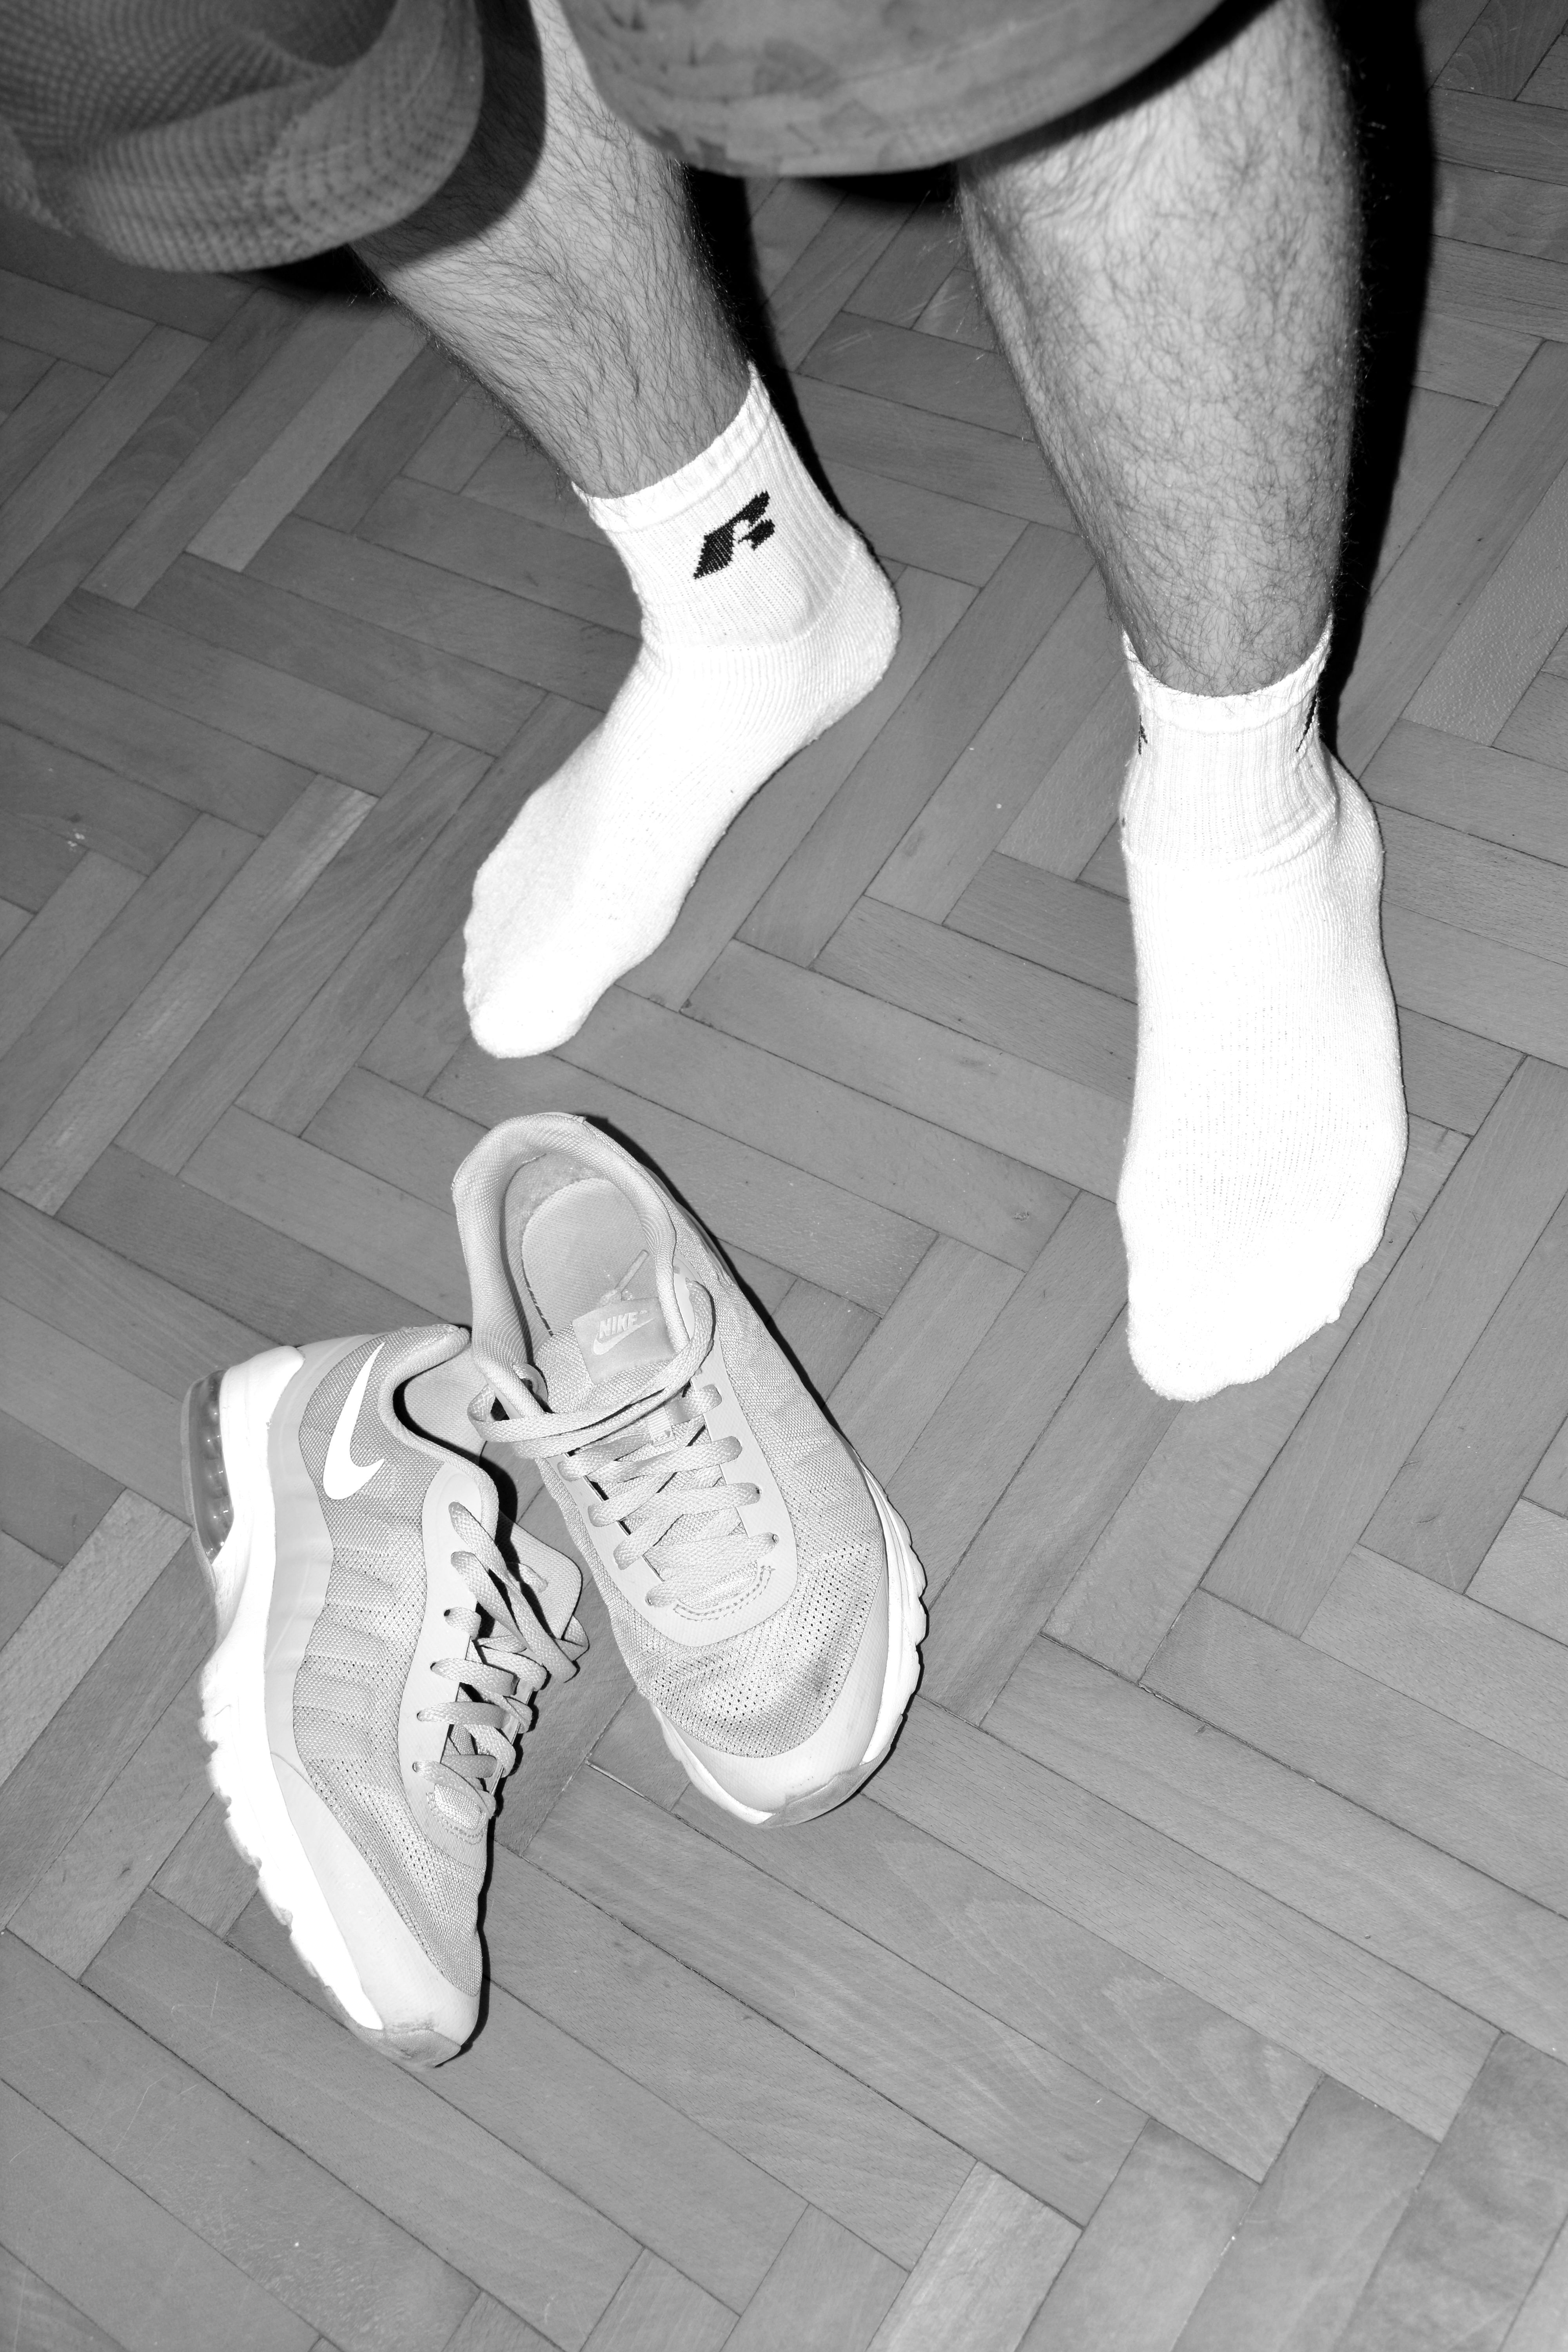 Shorts by Nike Socks by Russel Athletic Sneakers by Nike